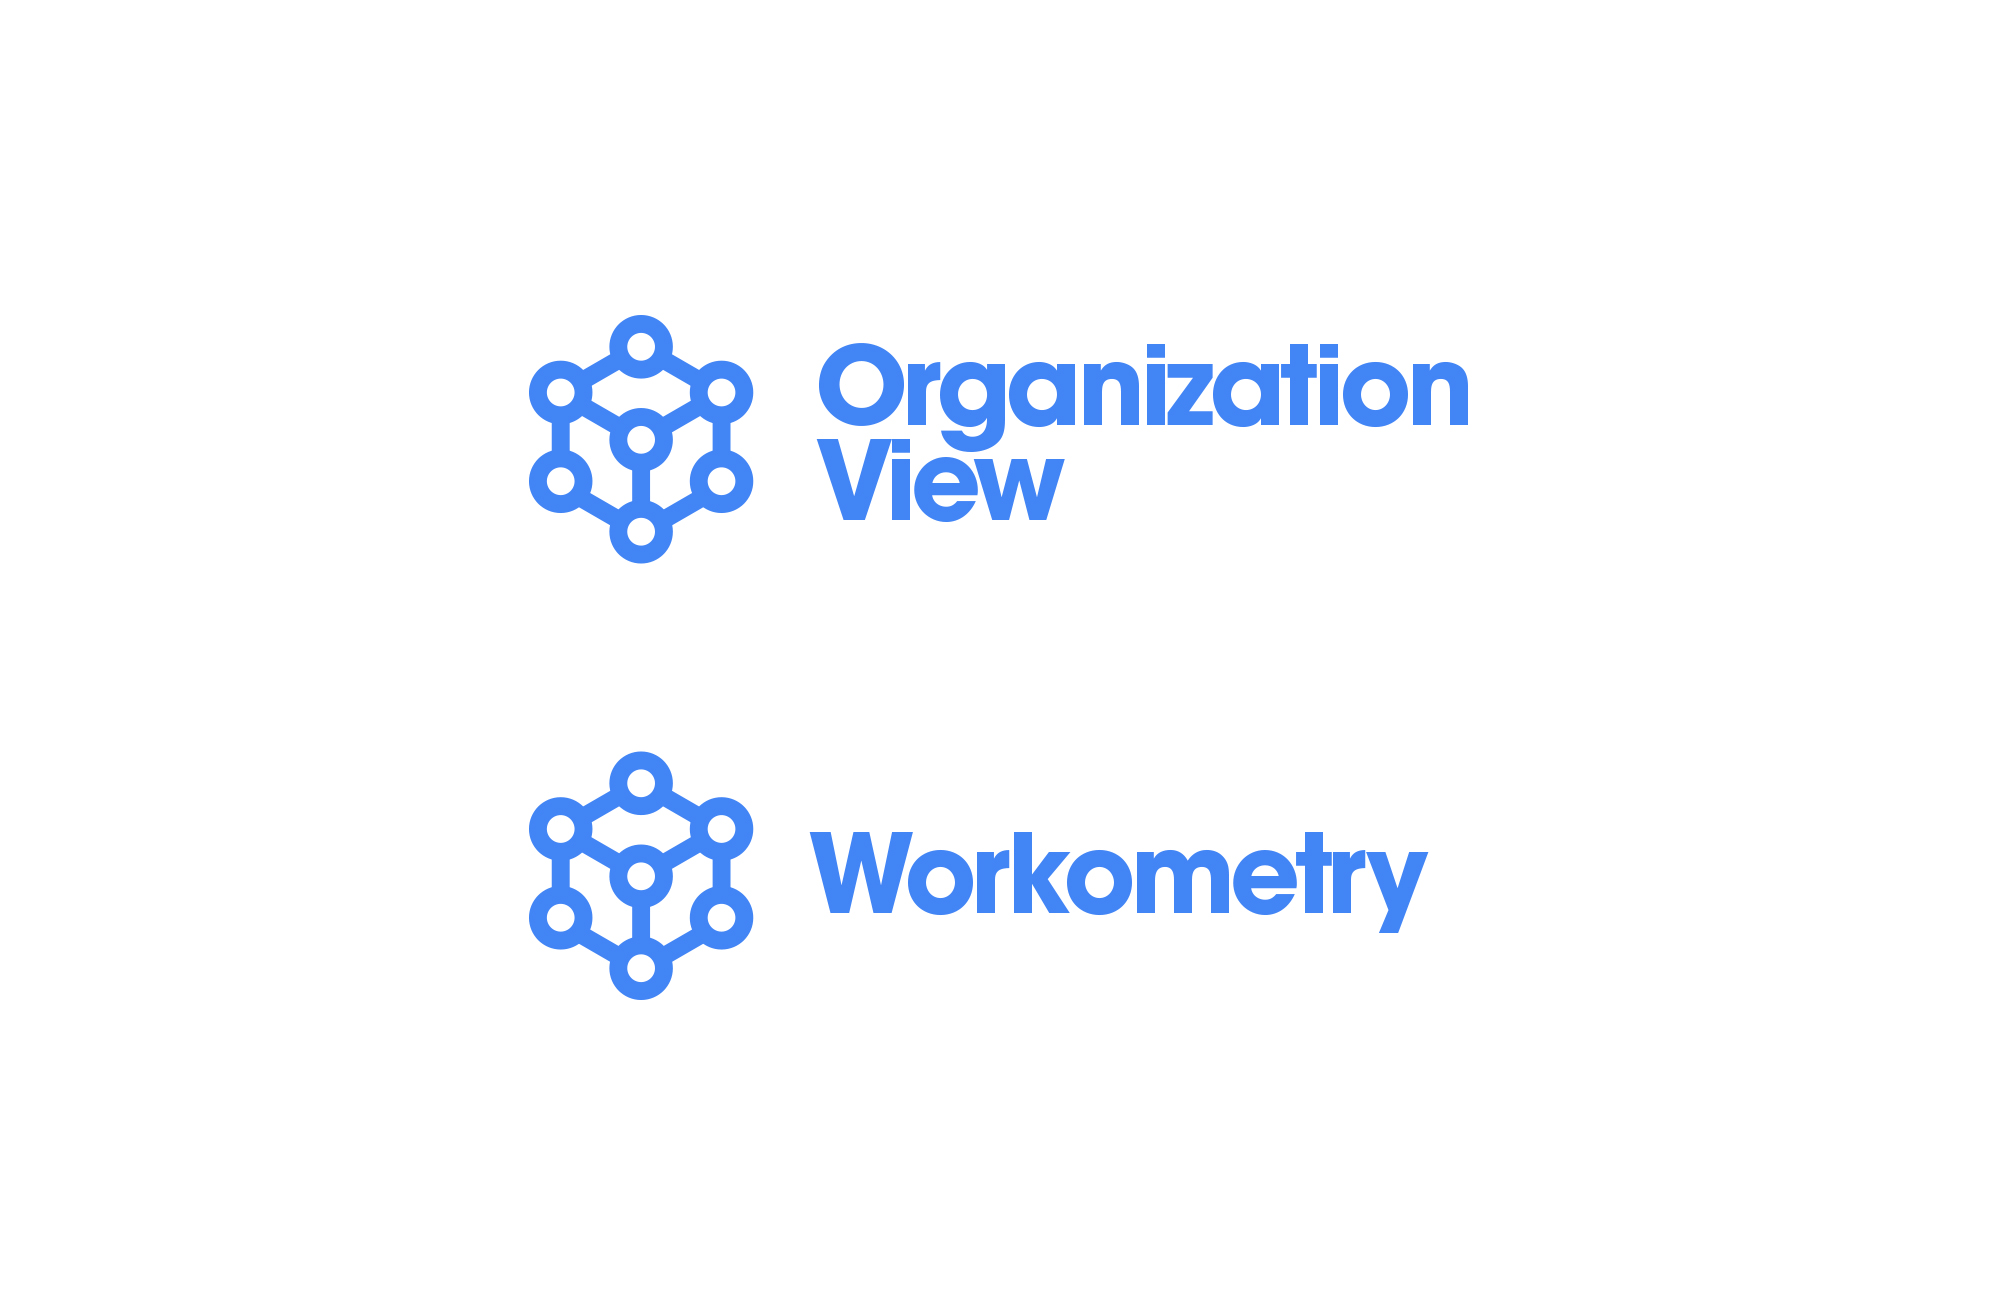 Organization_View_Logo_Development5.jpg